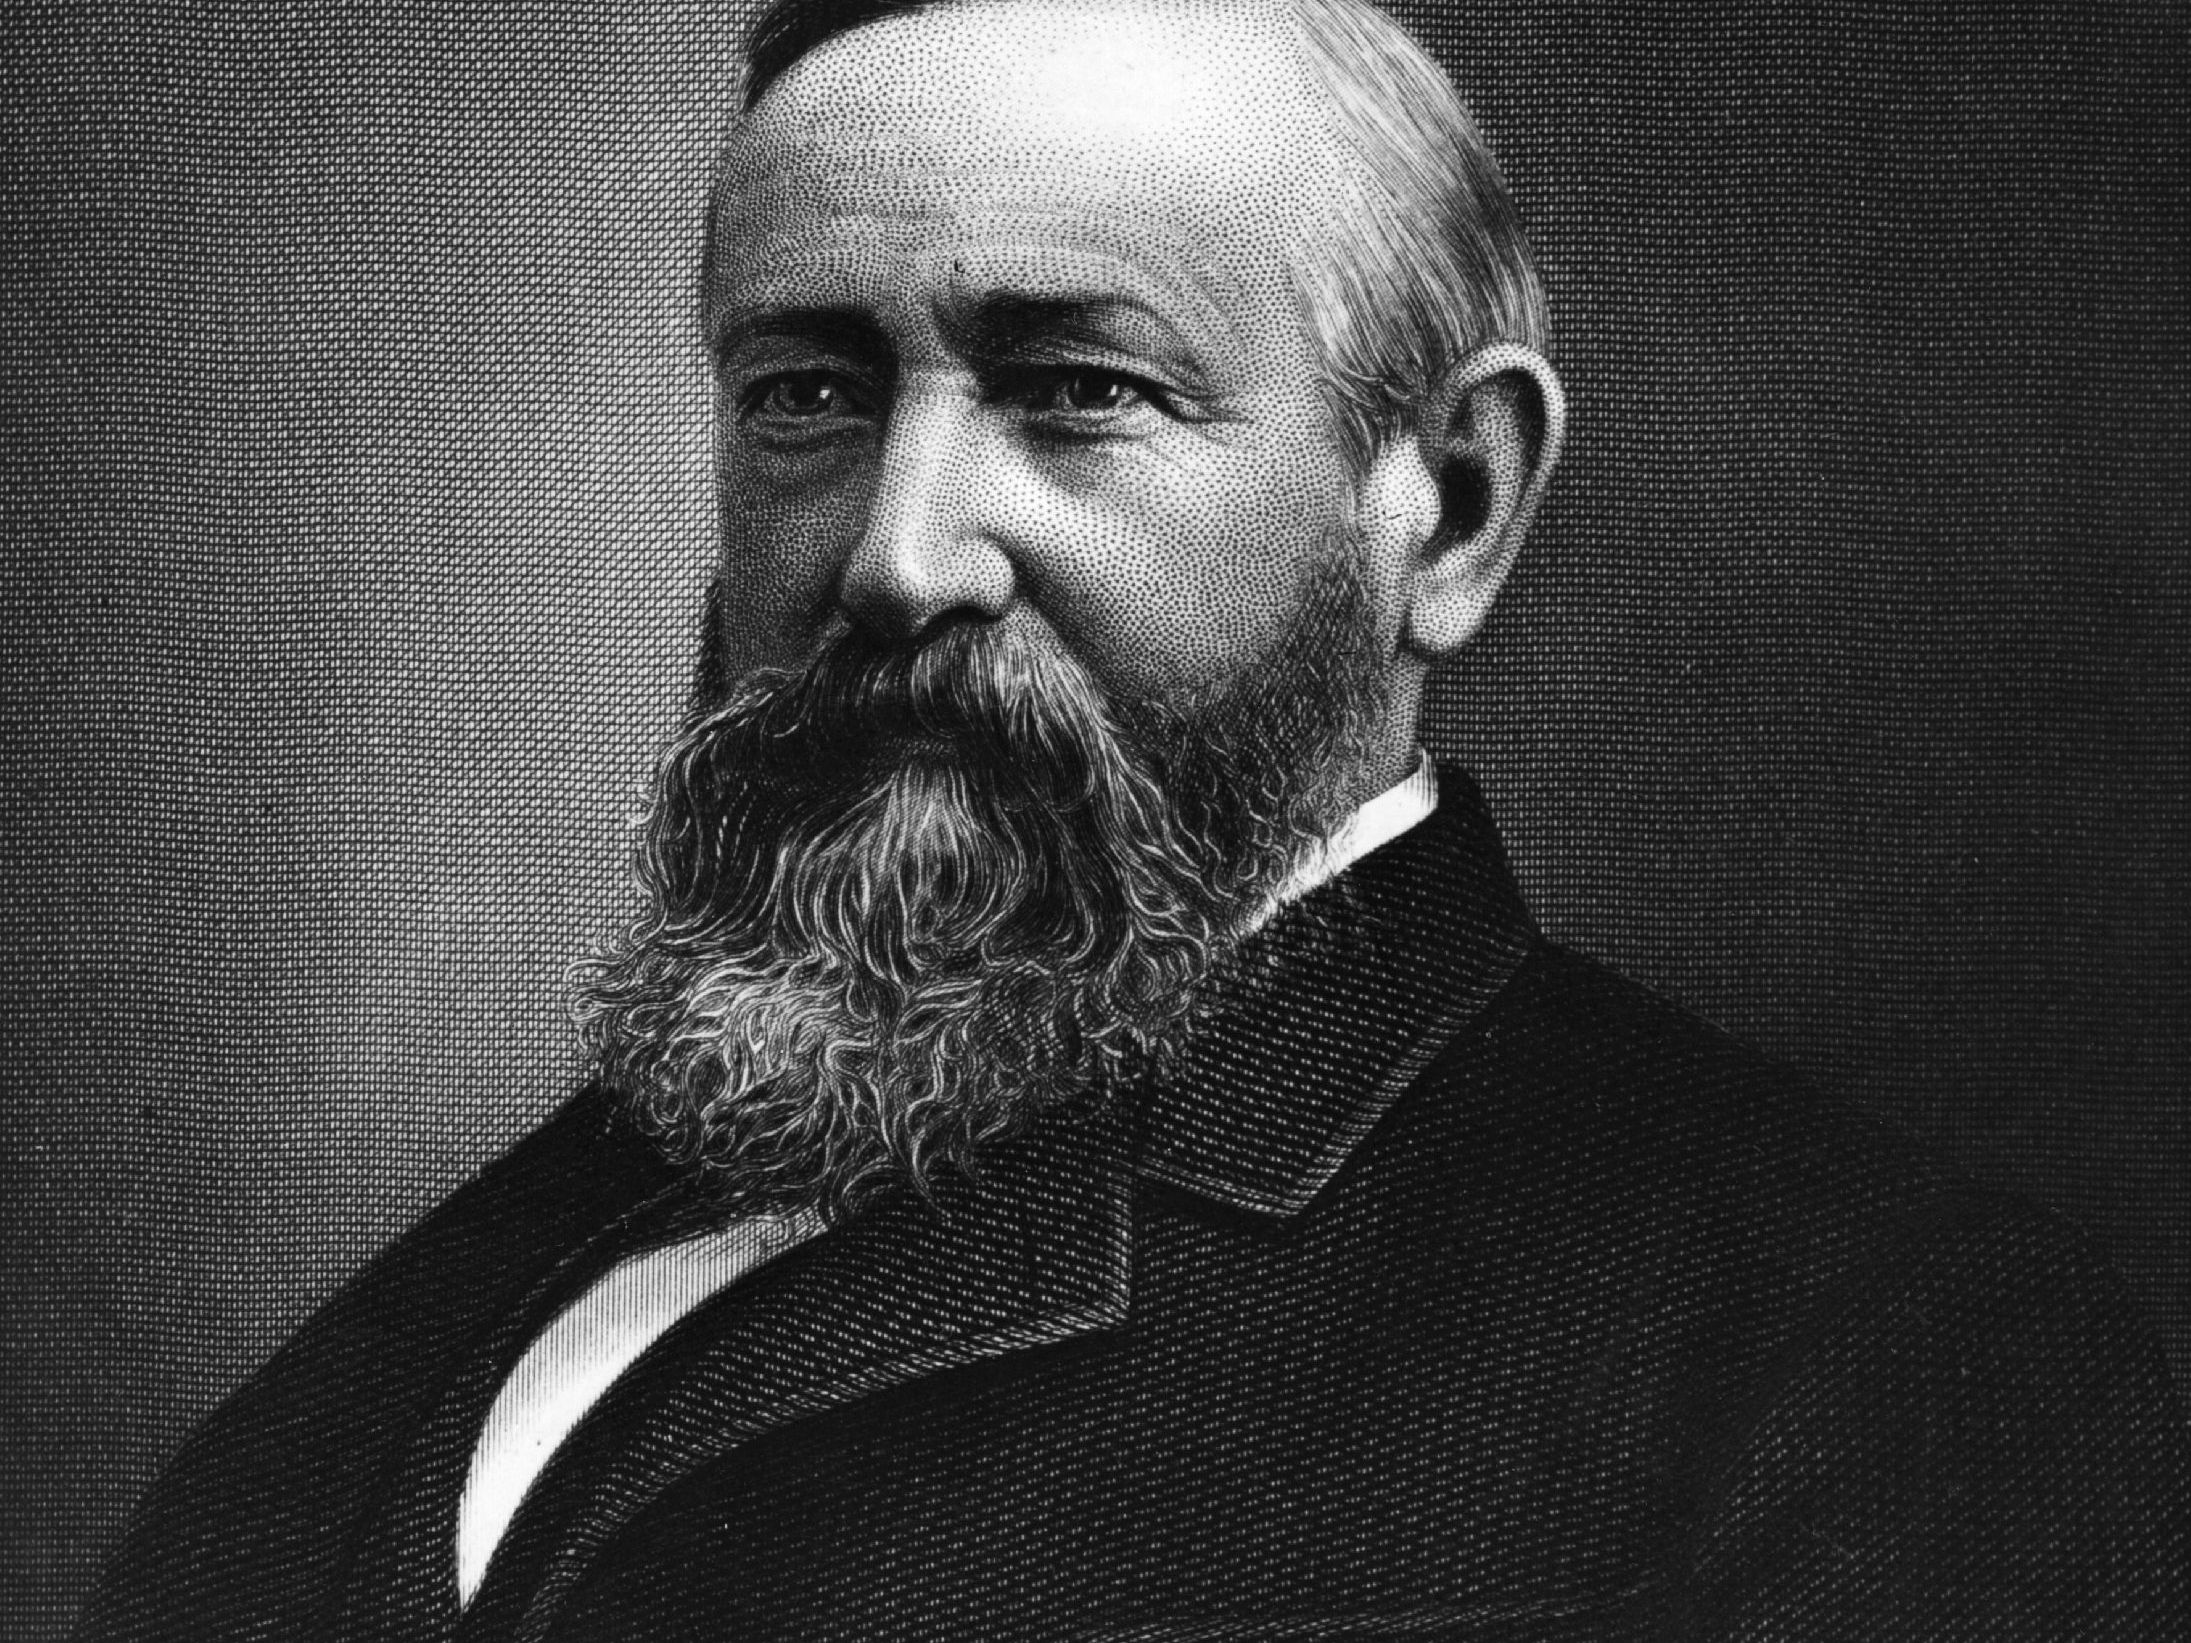 List of US Presidents With Beards